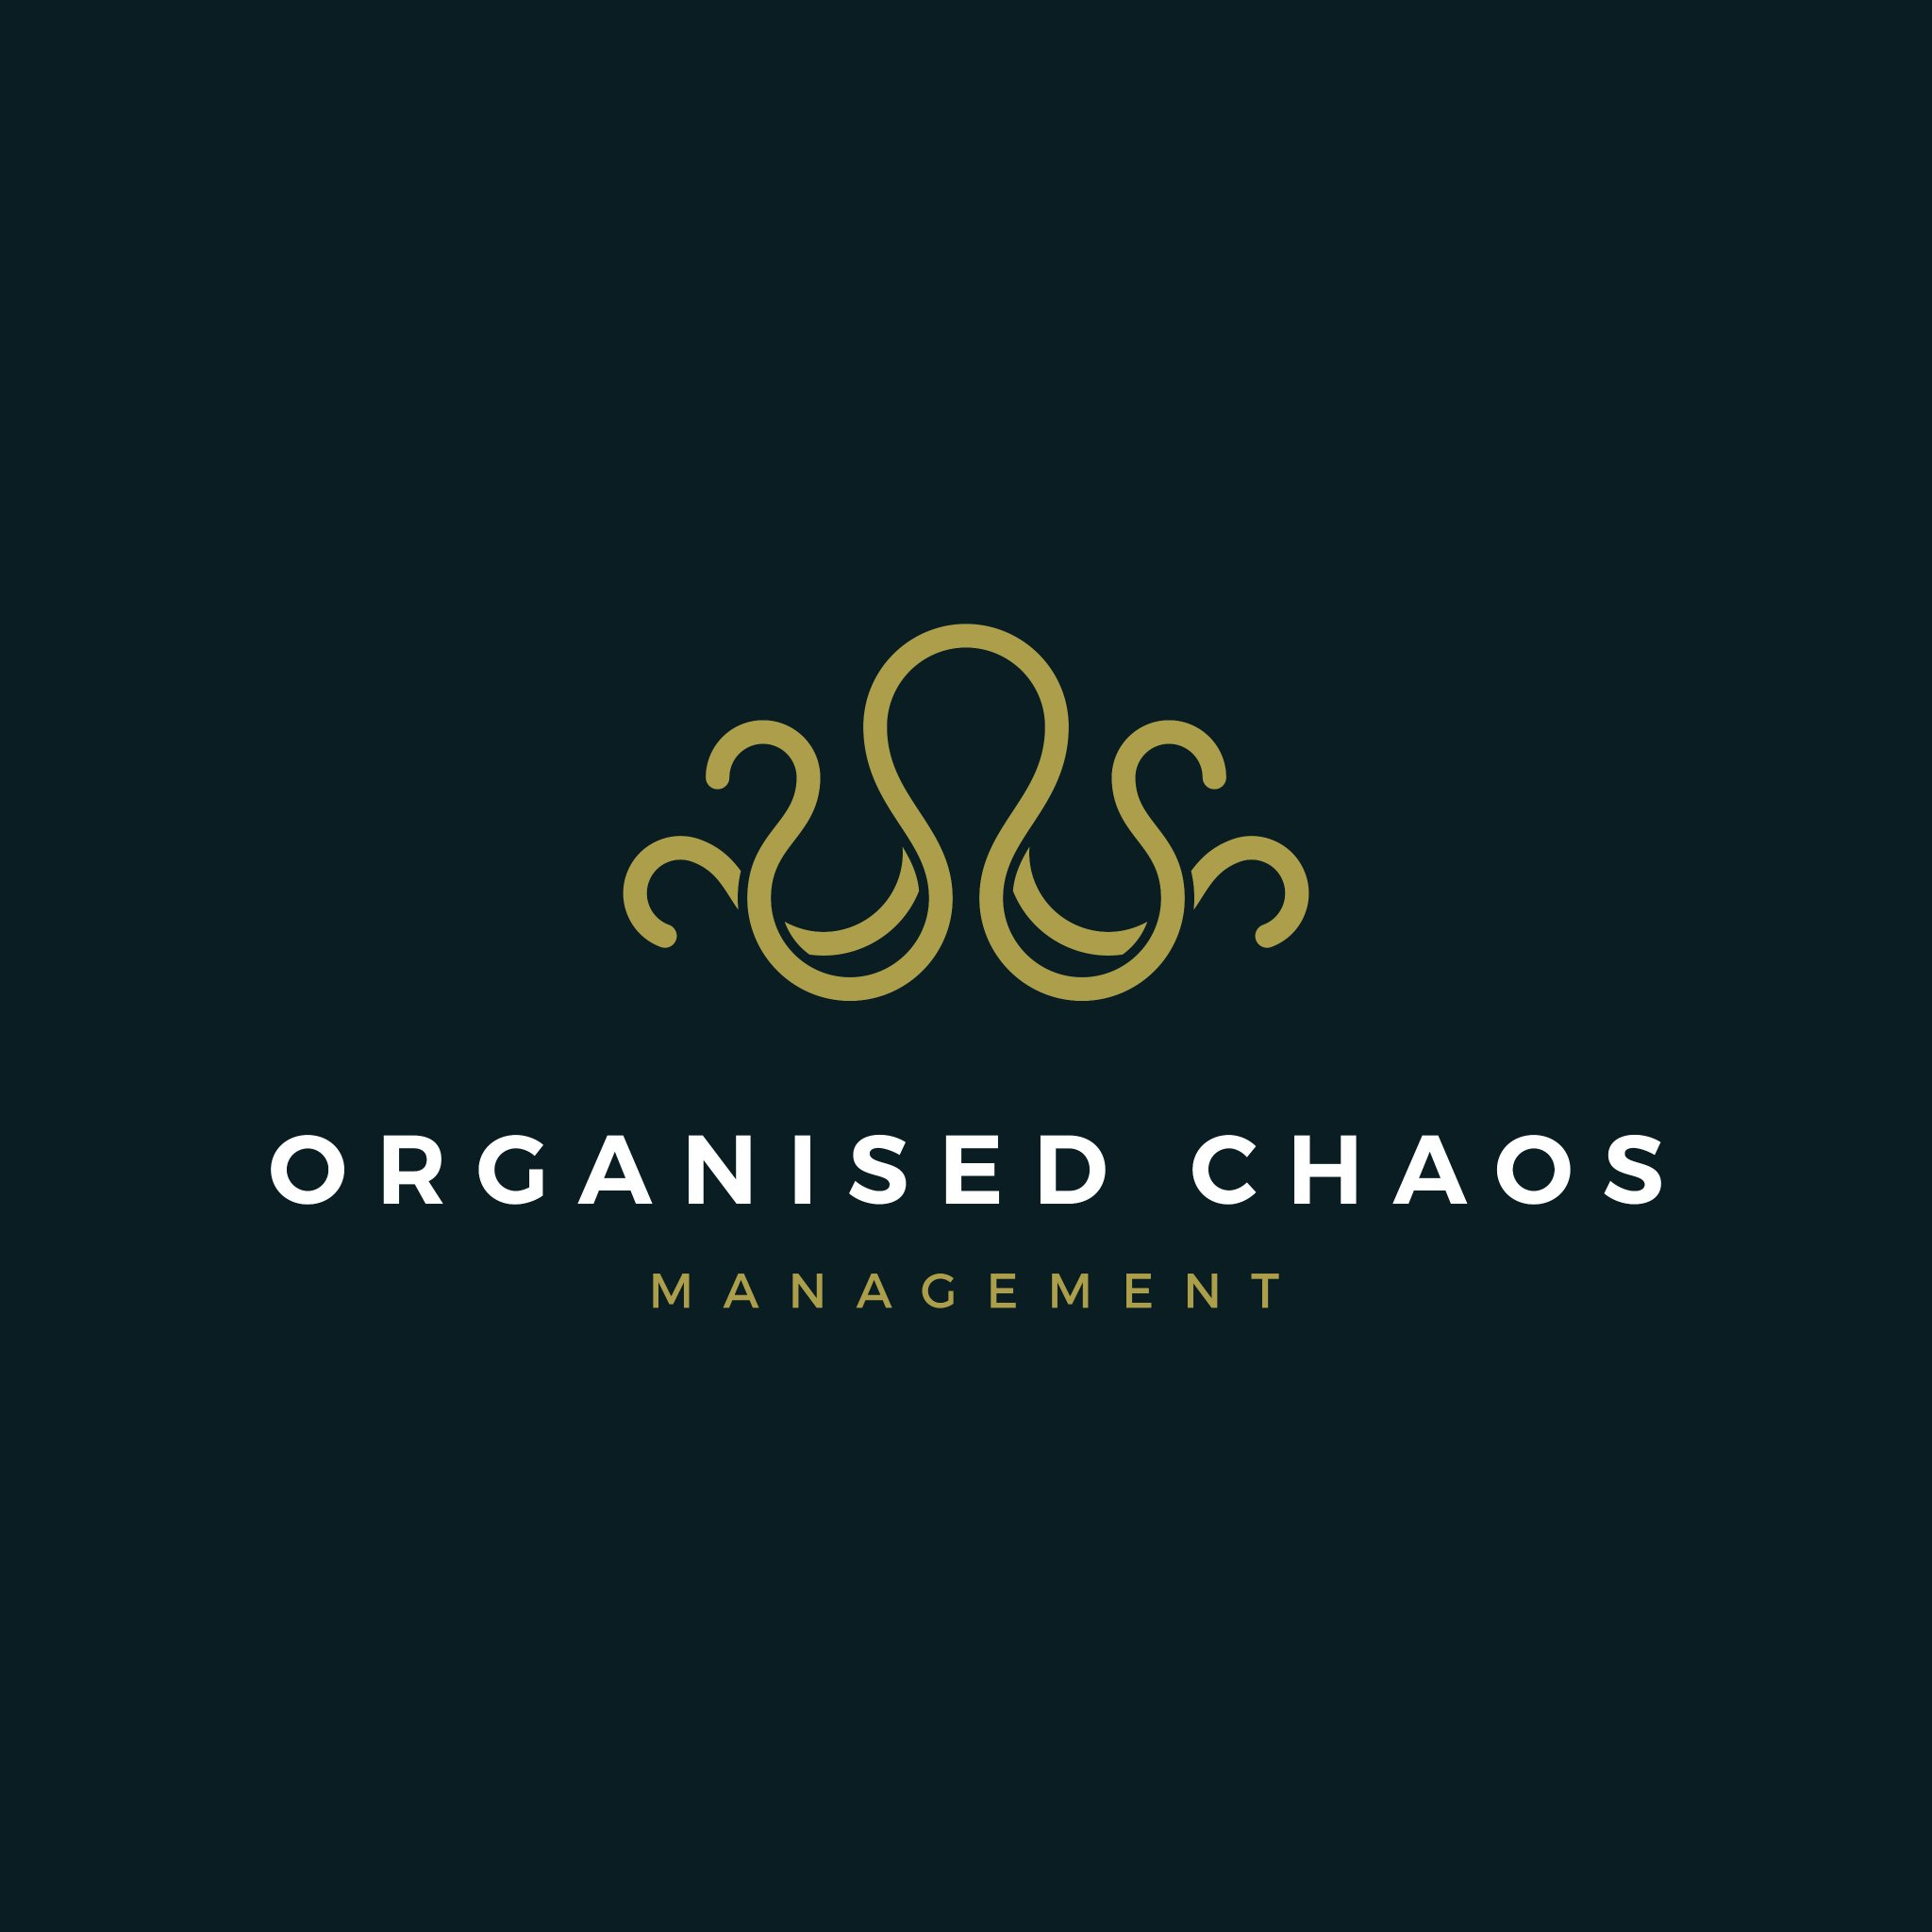 Organised Chaos Mgmt